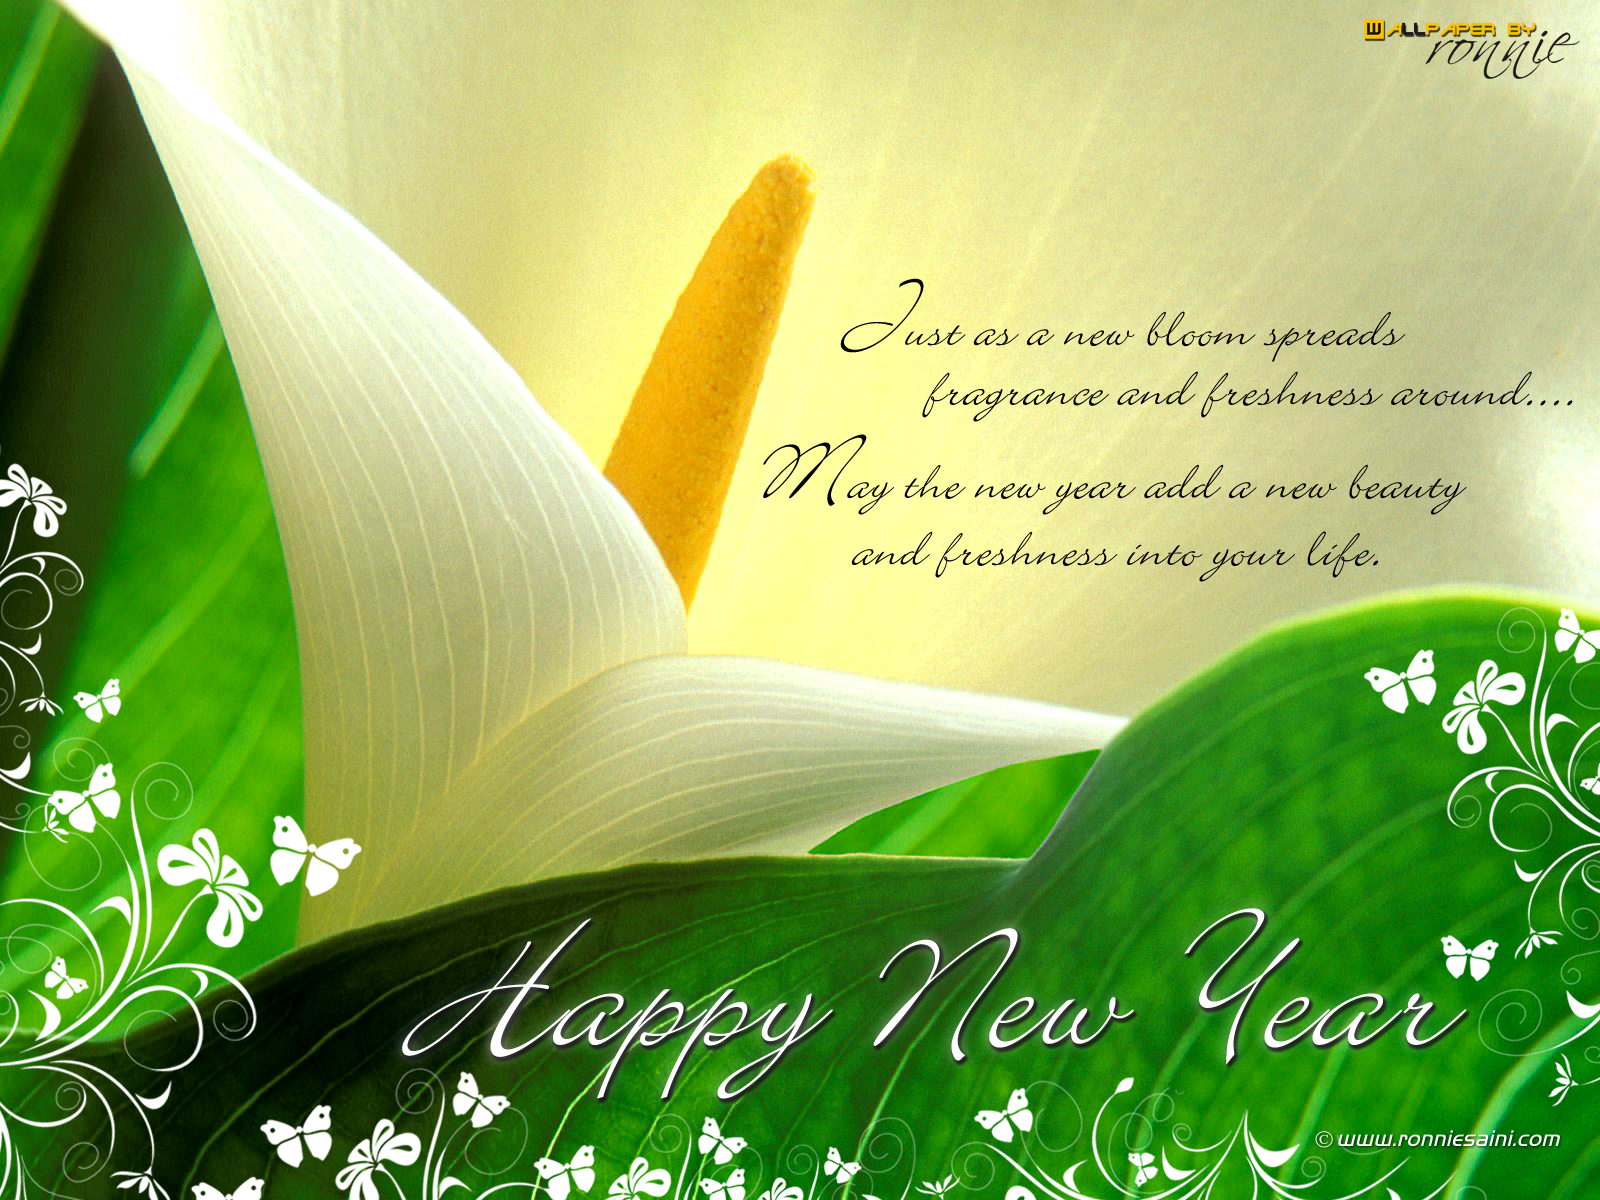 WallpapersKu: Happy New Year Wallpapers